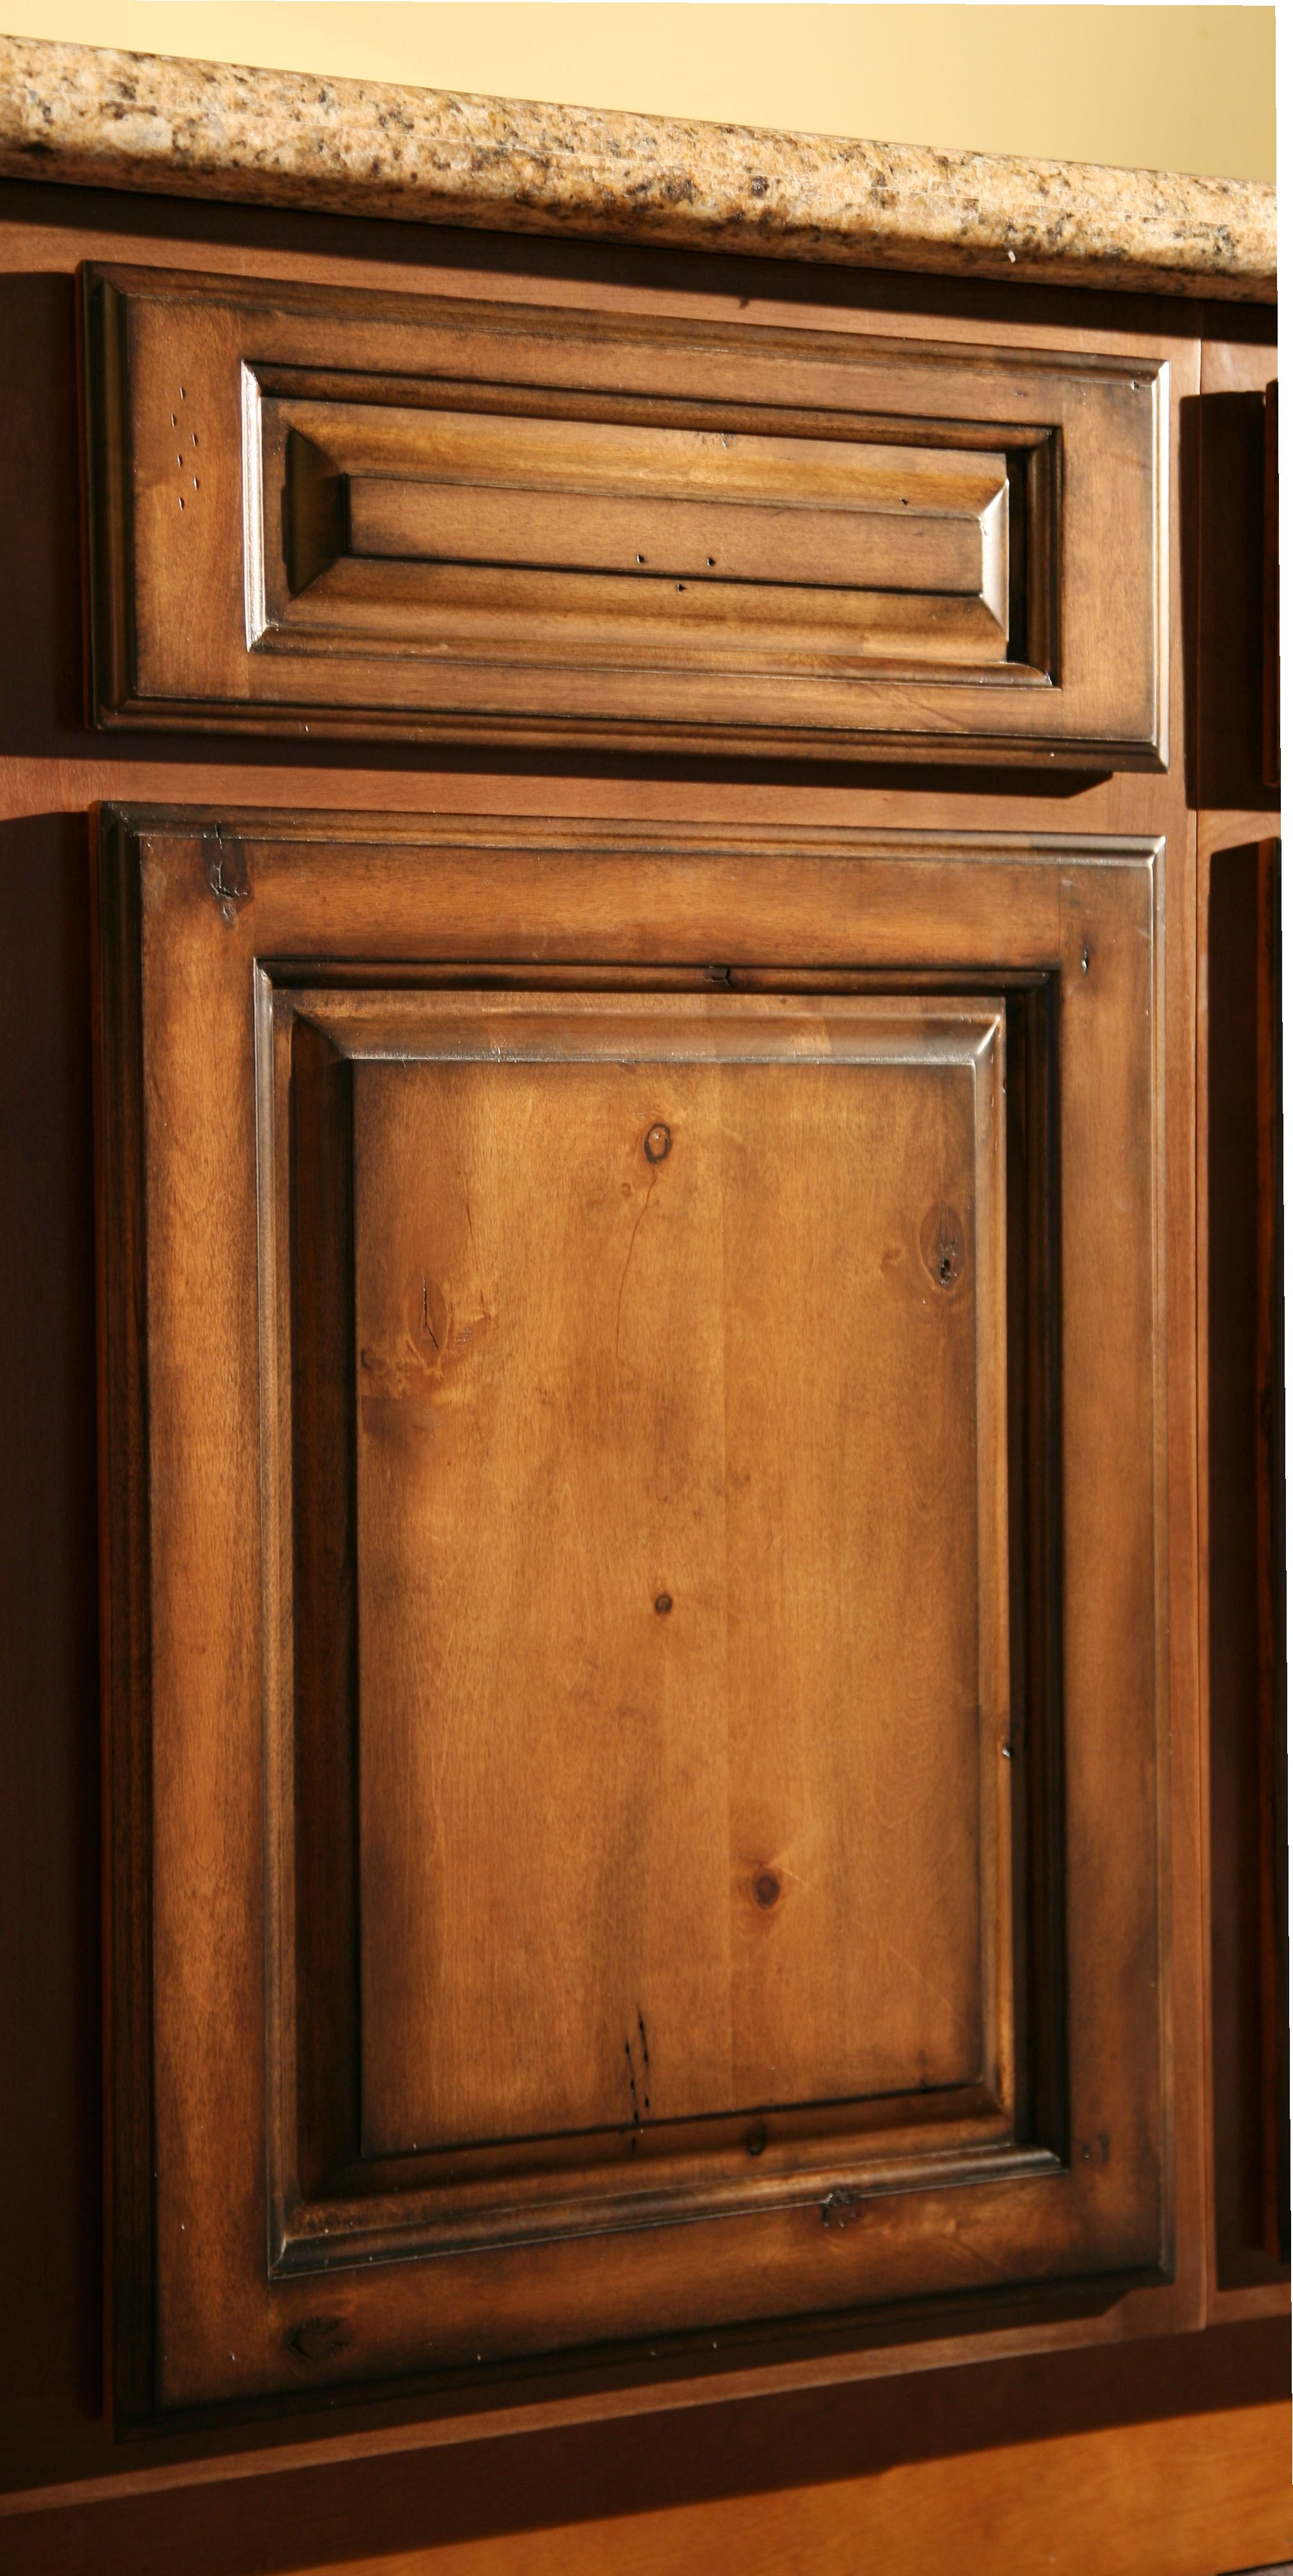 rustic kitchen cabinets Pecan Maple Glaze Kitchen Cabinets Rustic Finish Sample Door RTA All wood